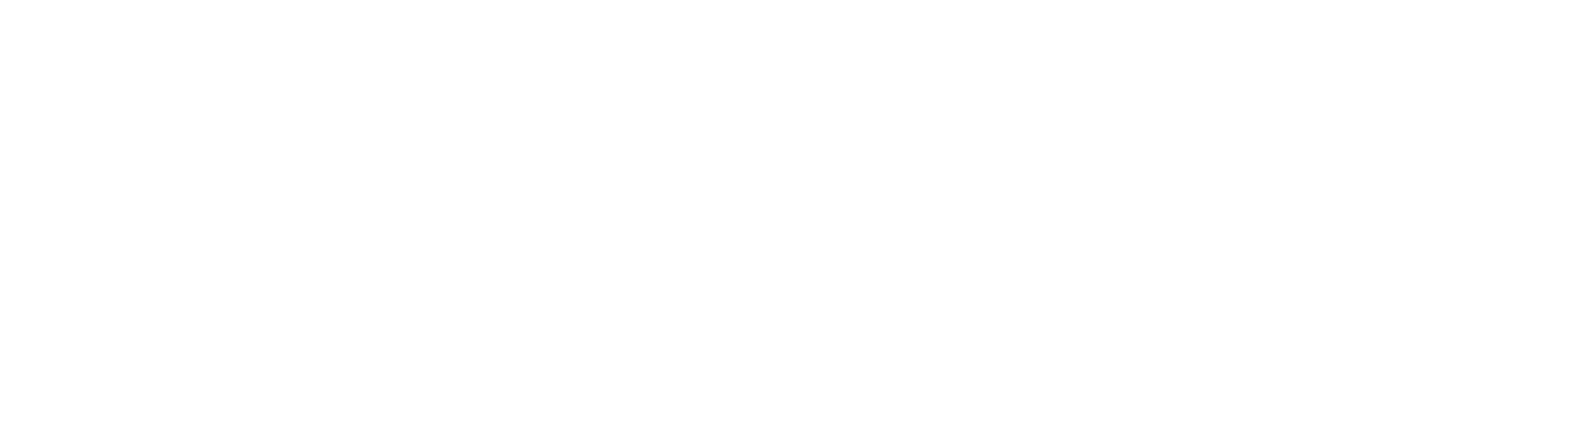 Watch with WMHT White Transparent Logo